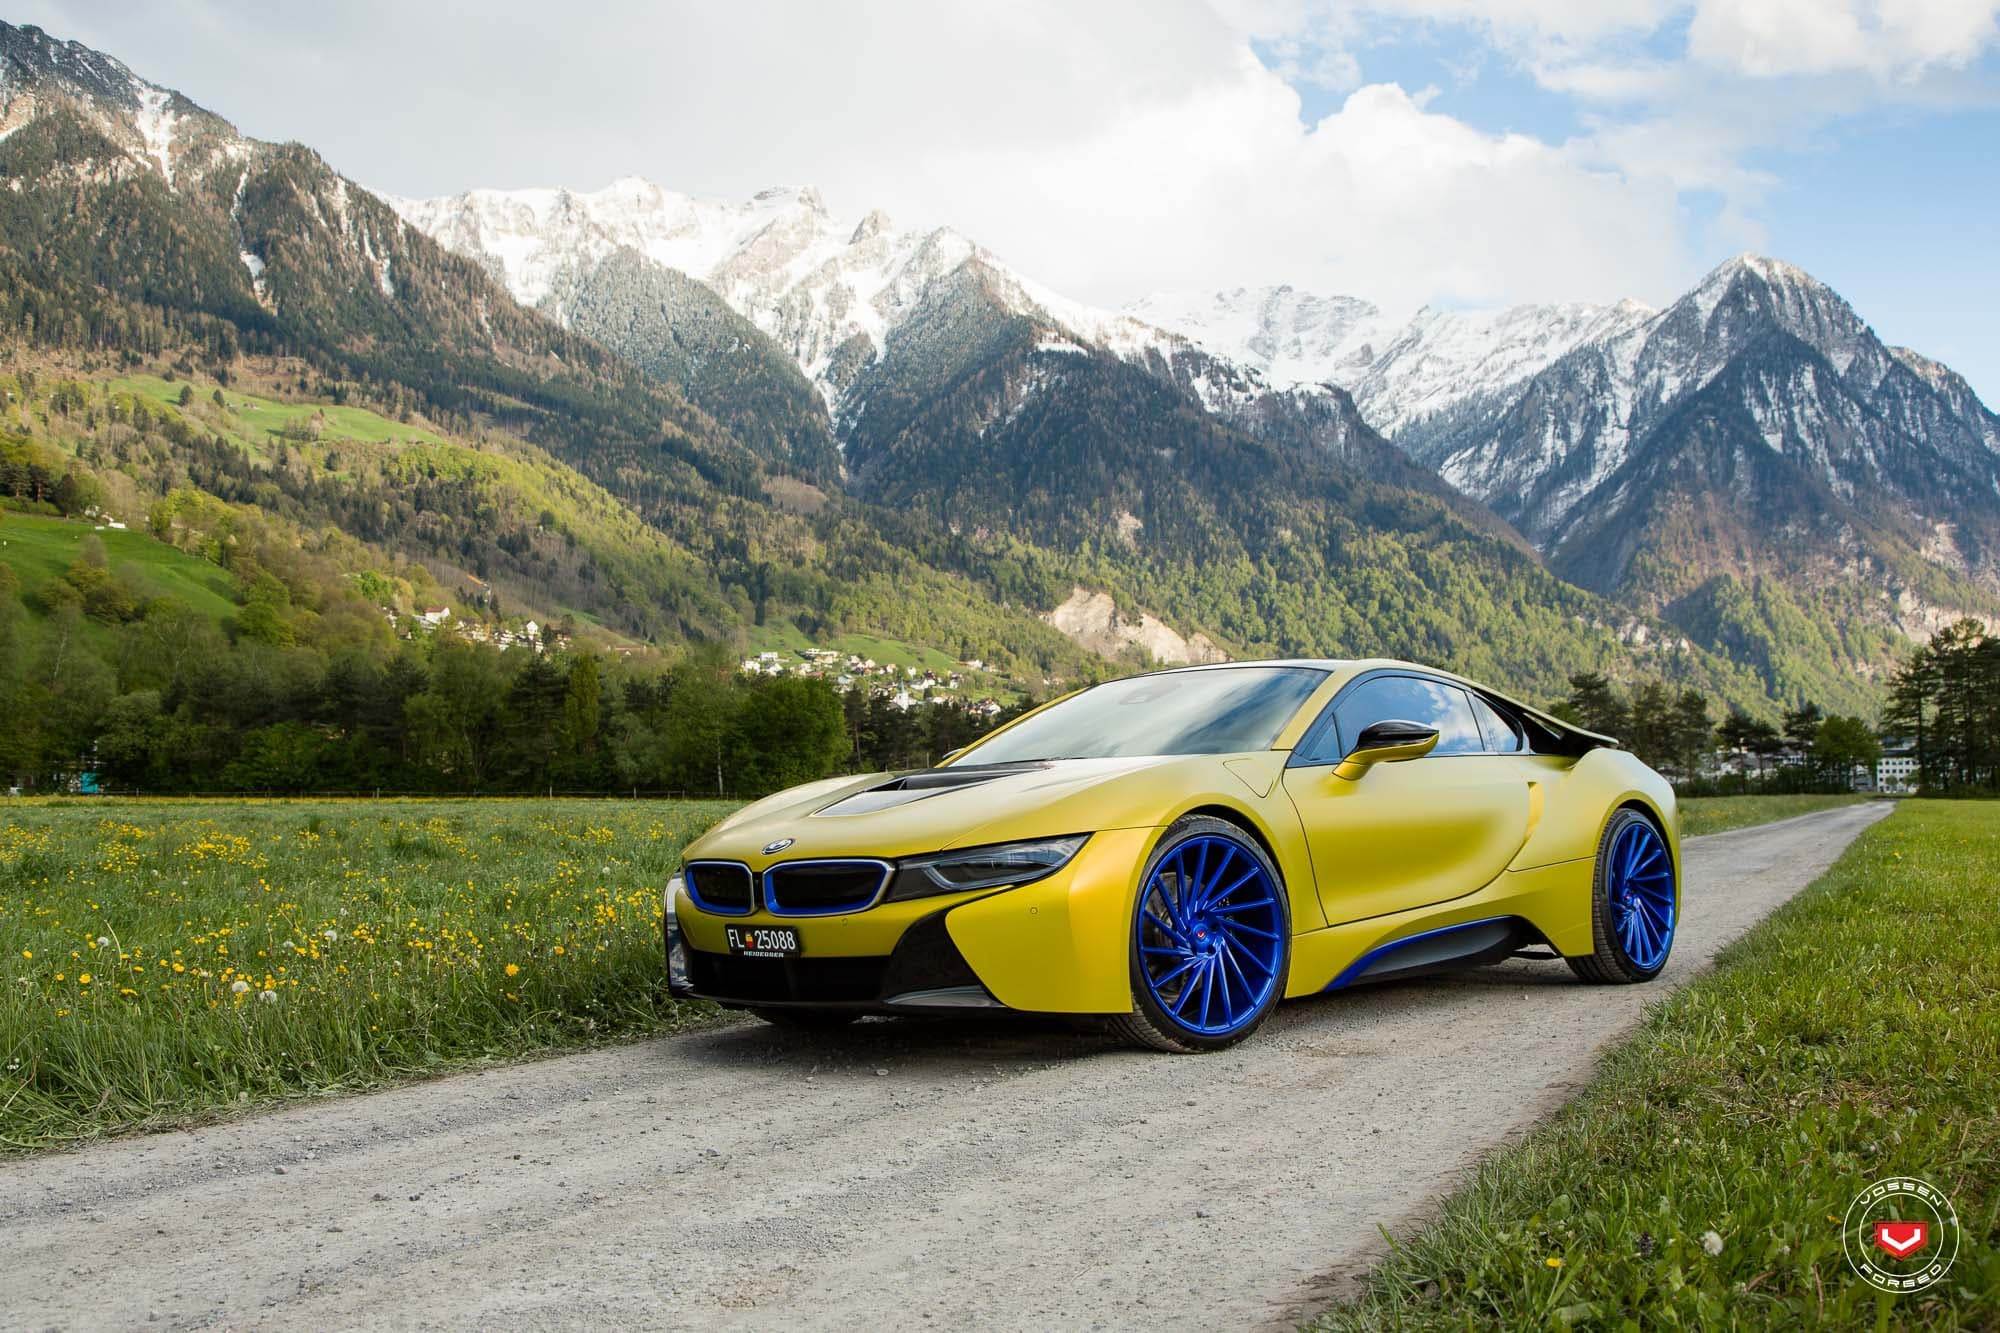 BMW i8 2016 Wallpapers High Quality and Resolution 14+